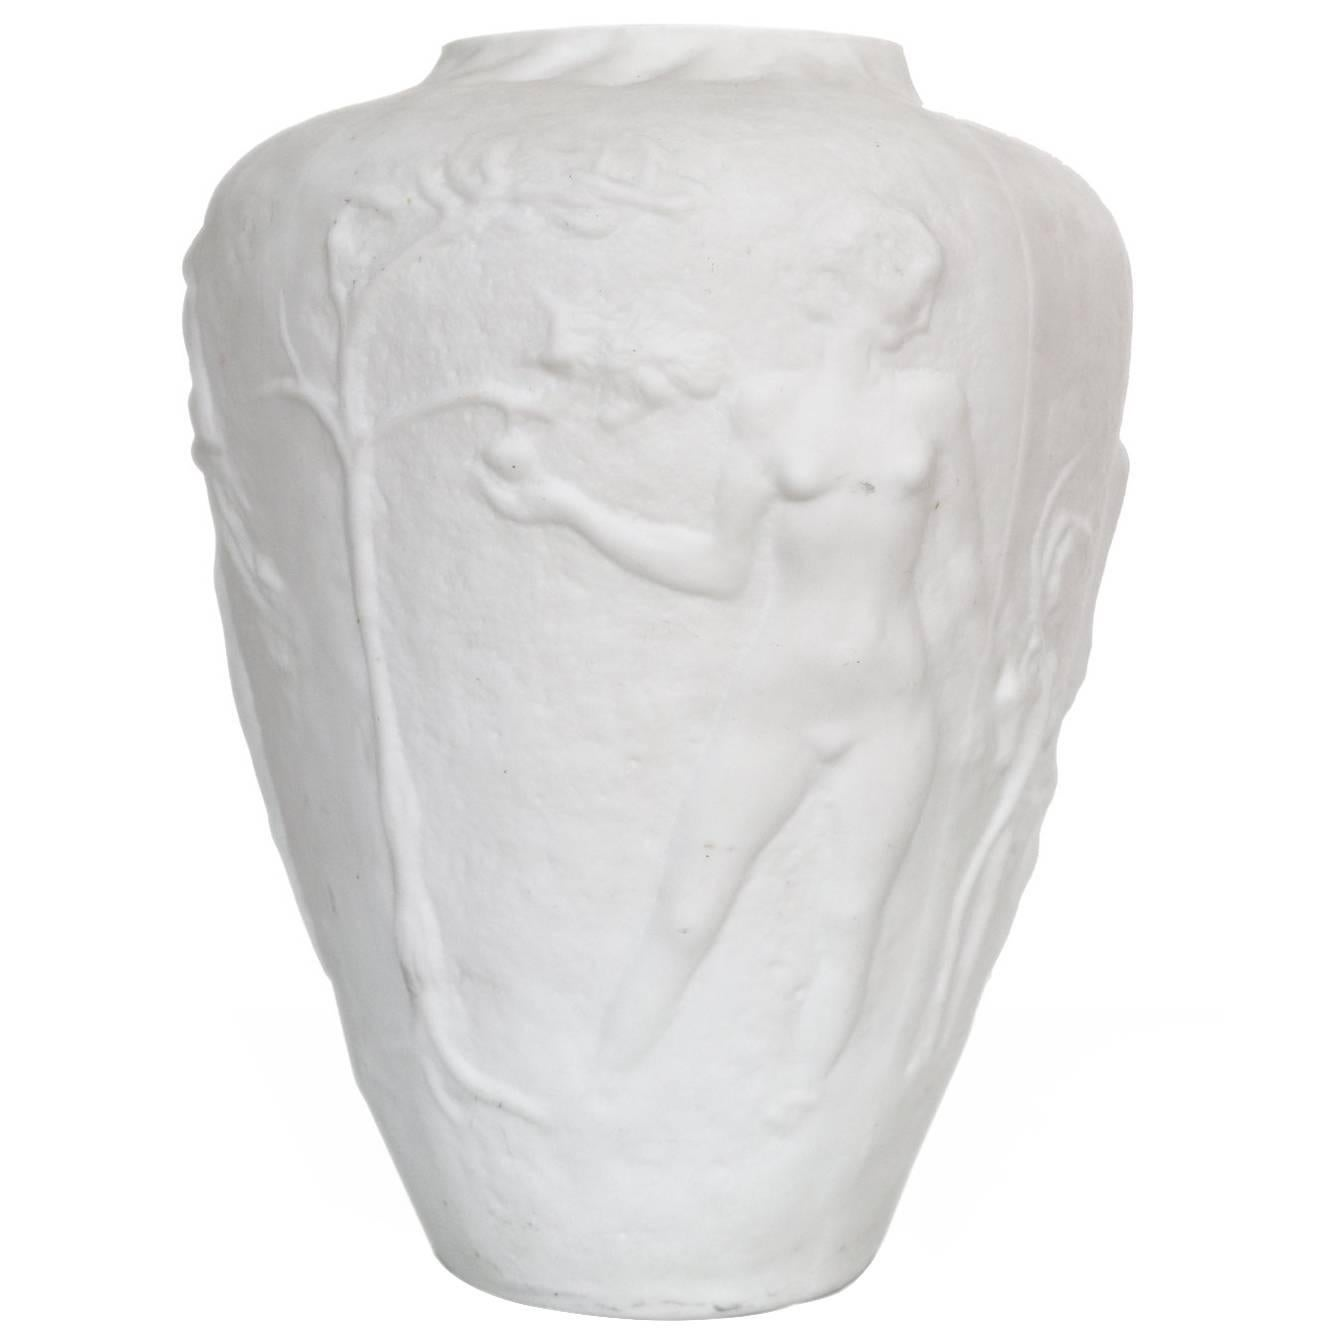 Art Deco Relief Glass Vase with Four Nude Female Figures